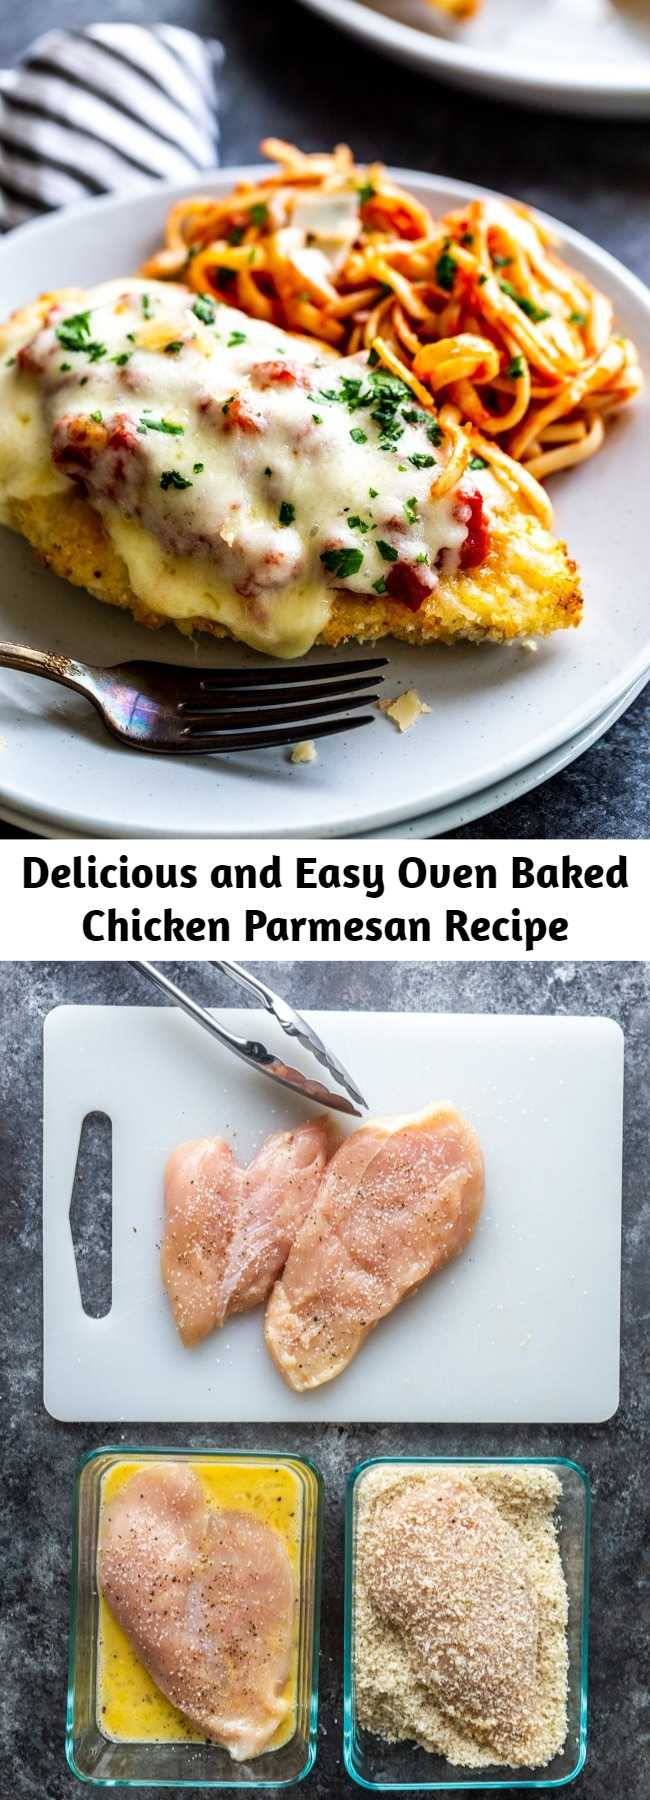 Delicious and Easy Oven Baked Chicken Parmesan Recipe - This delicious Oven Baked Chicken Parmesan recipe is easy and doesn't require any frying. Because this chicken Parmesan is baked, it is healthy, quick and easy! Make this crispy baked Parmesan crusted chicken for dinner tonight in about thirty minutes!